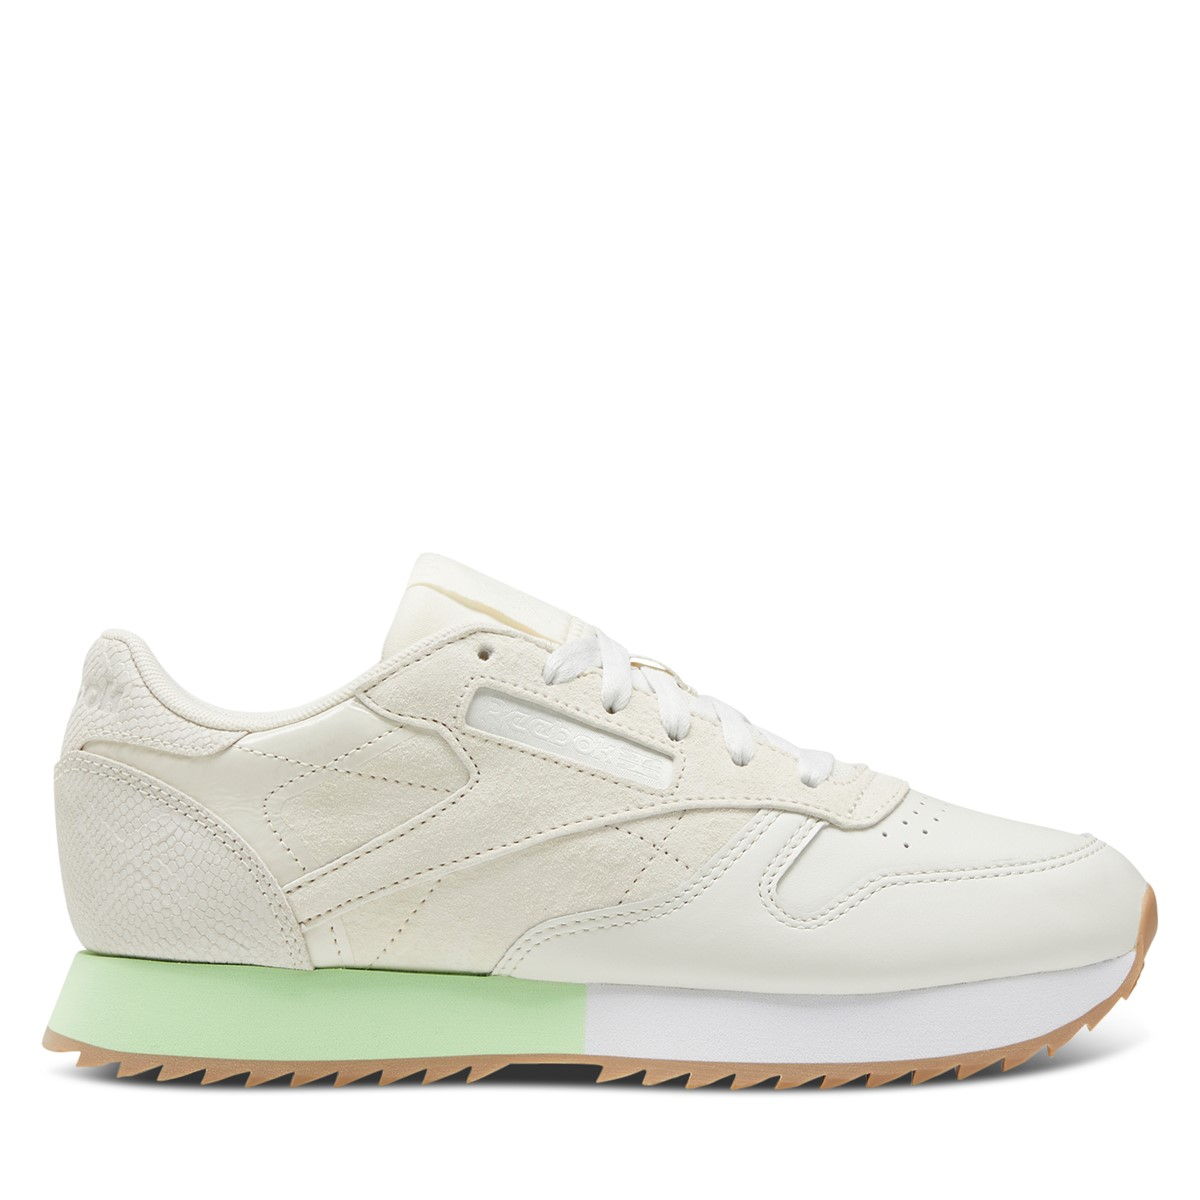 Women's Classic Leather Sneakers in Off-White/Neon Green